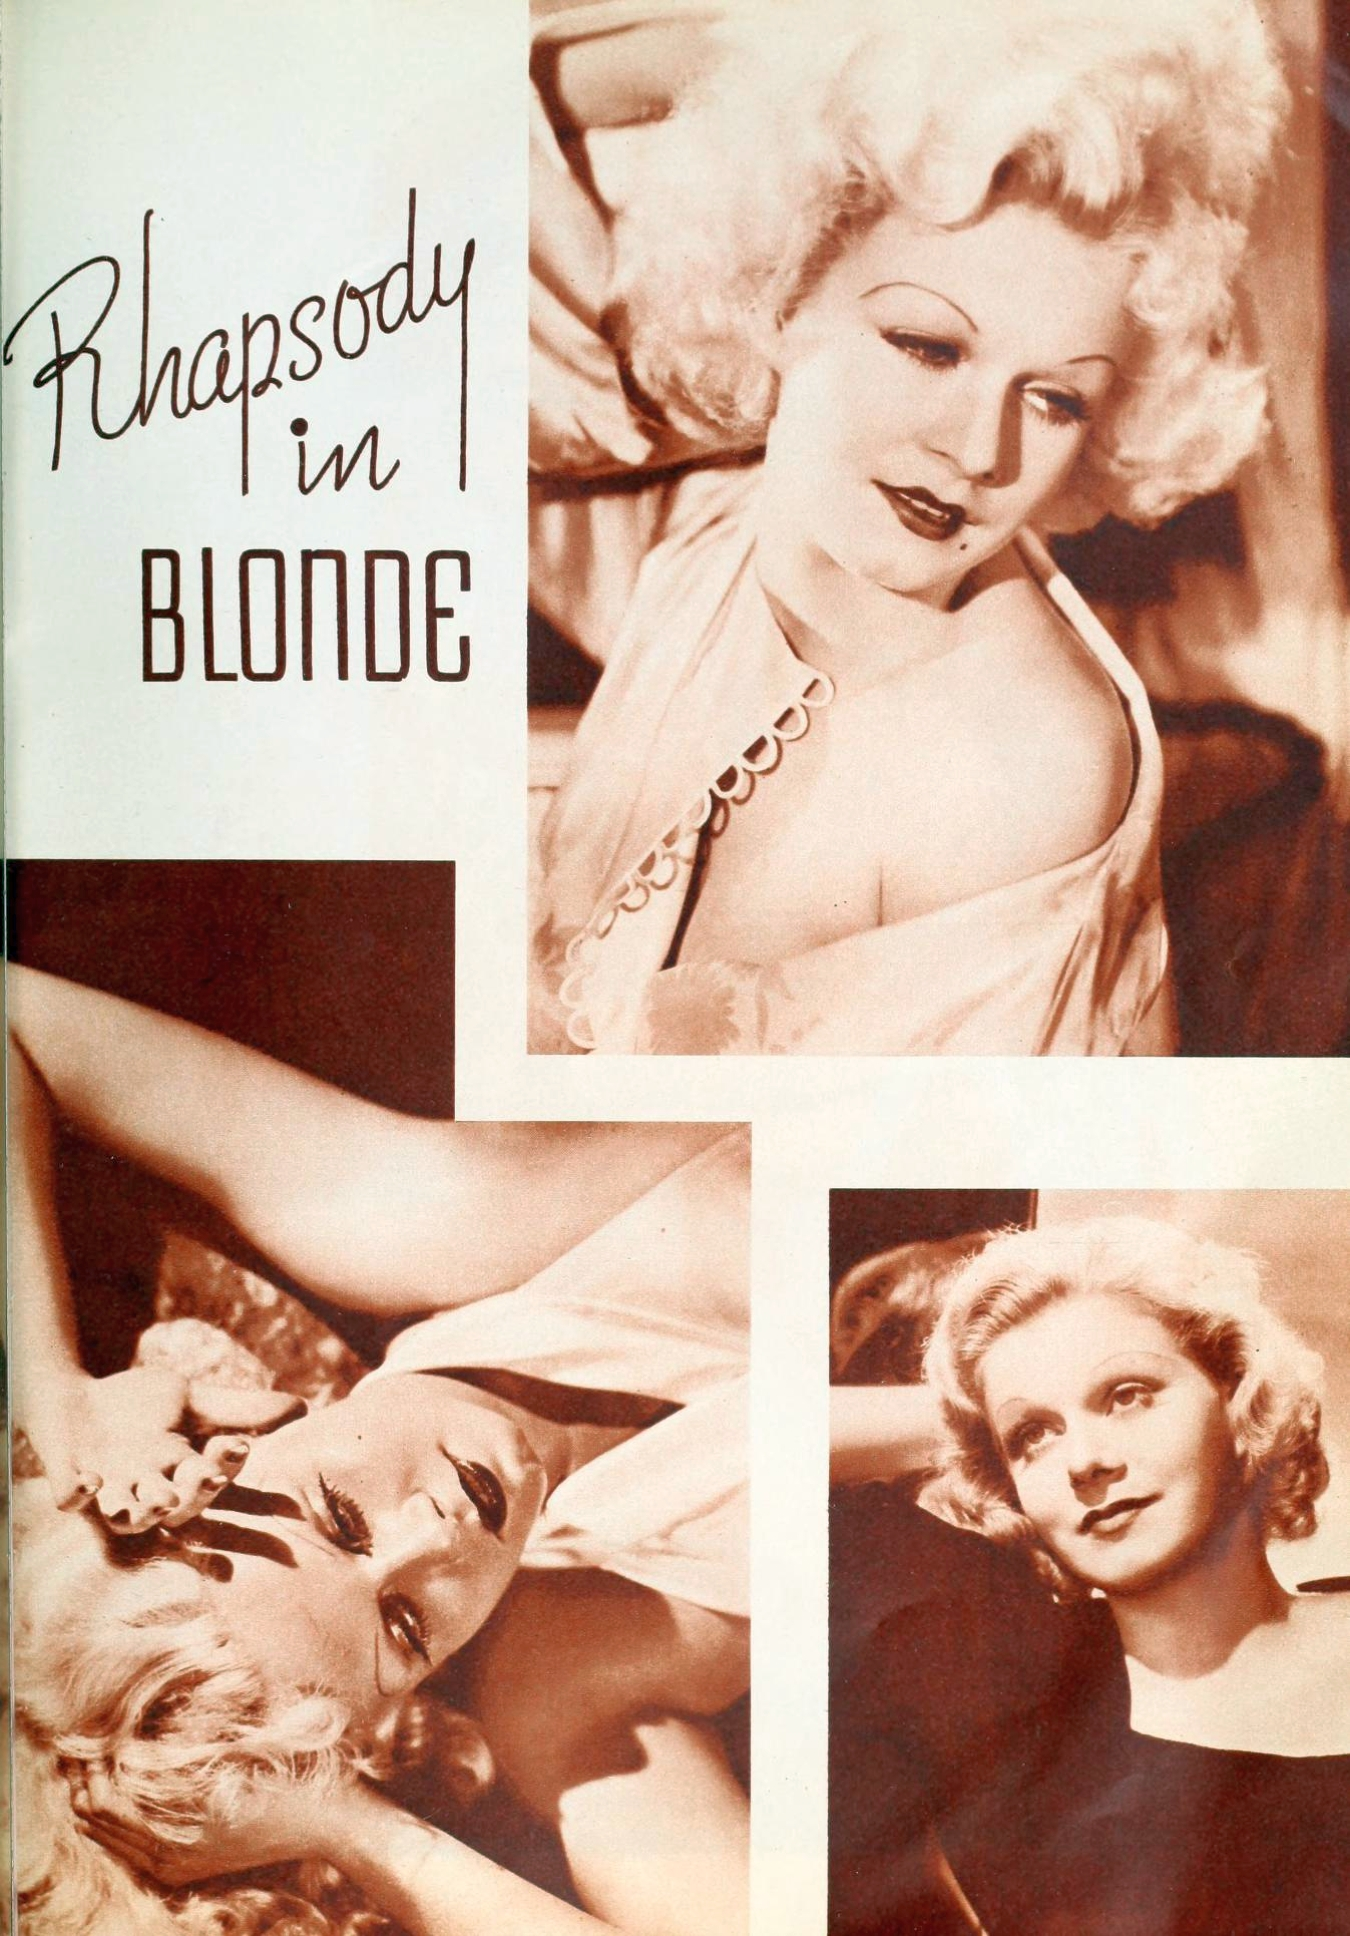 photoplay feb 1937 jean harlow 01a